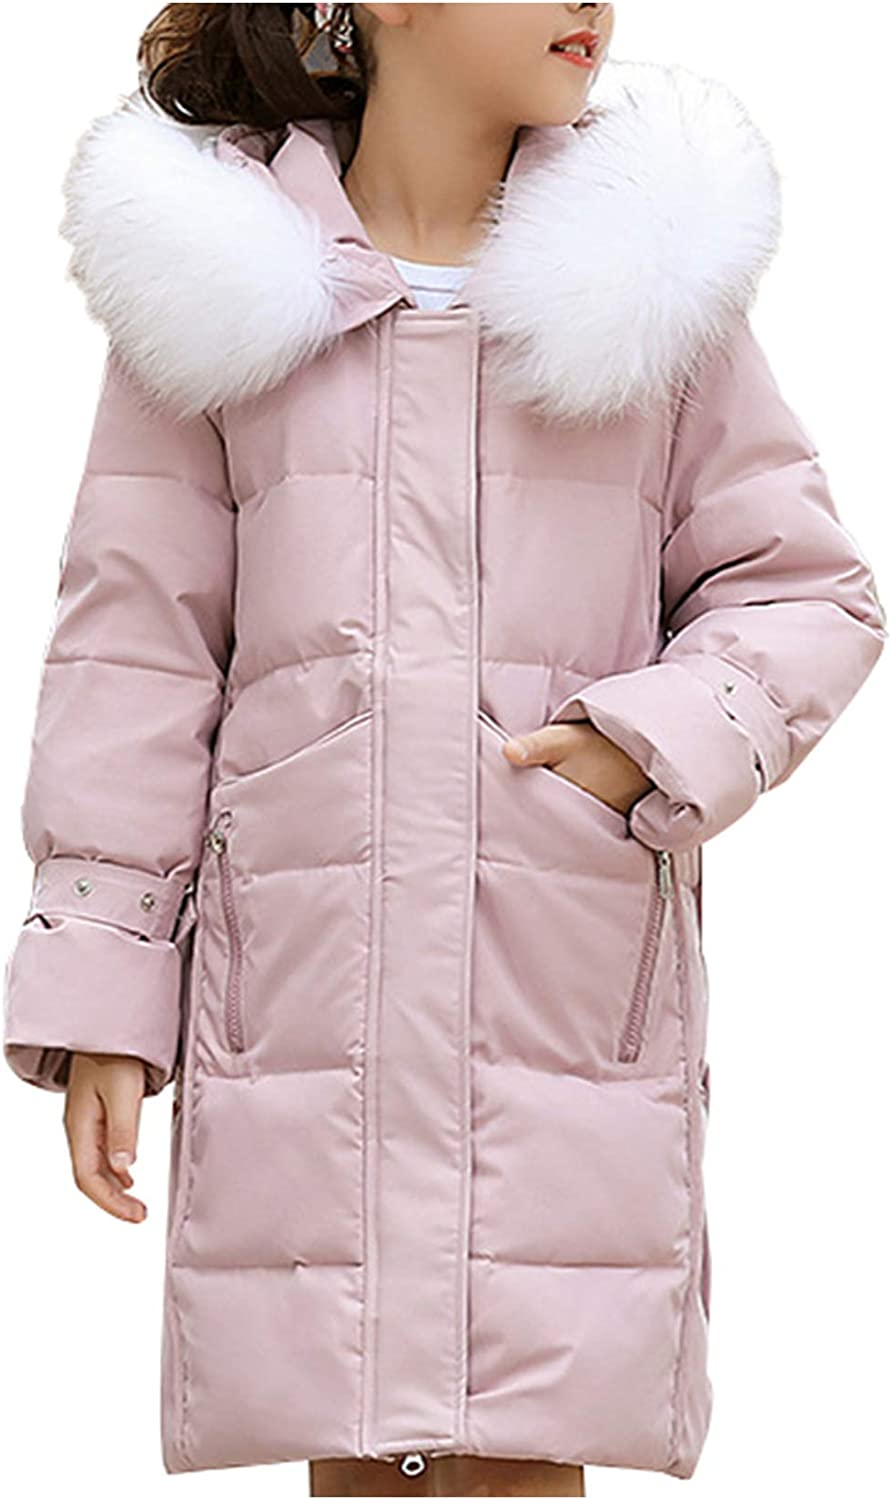 Girl Child Teens Warm Knee Length Down Hooded Fur Pa Bombing new work Duck Max 78% OFF Puffer